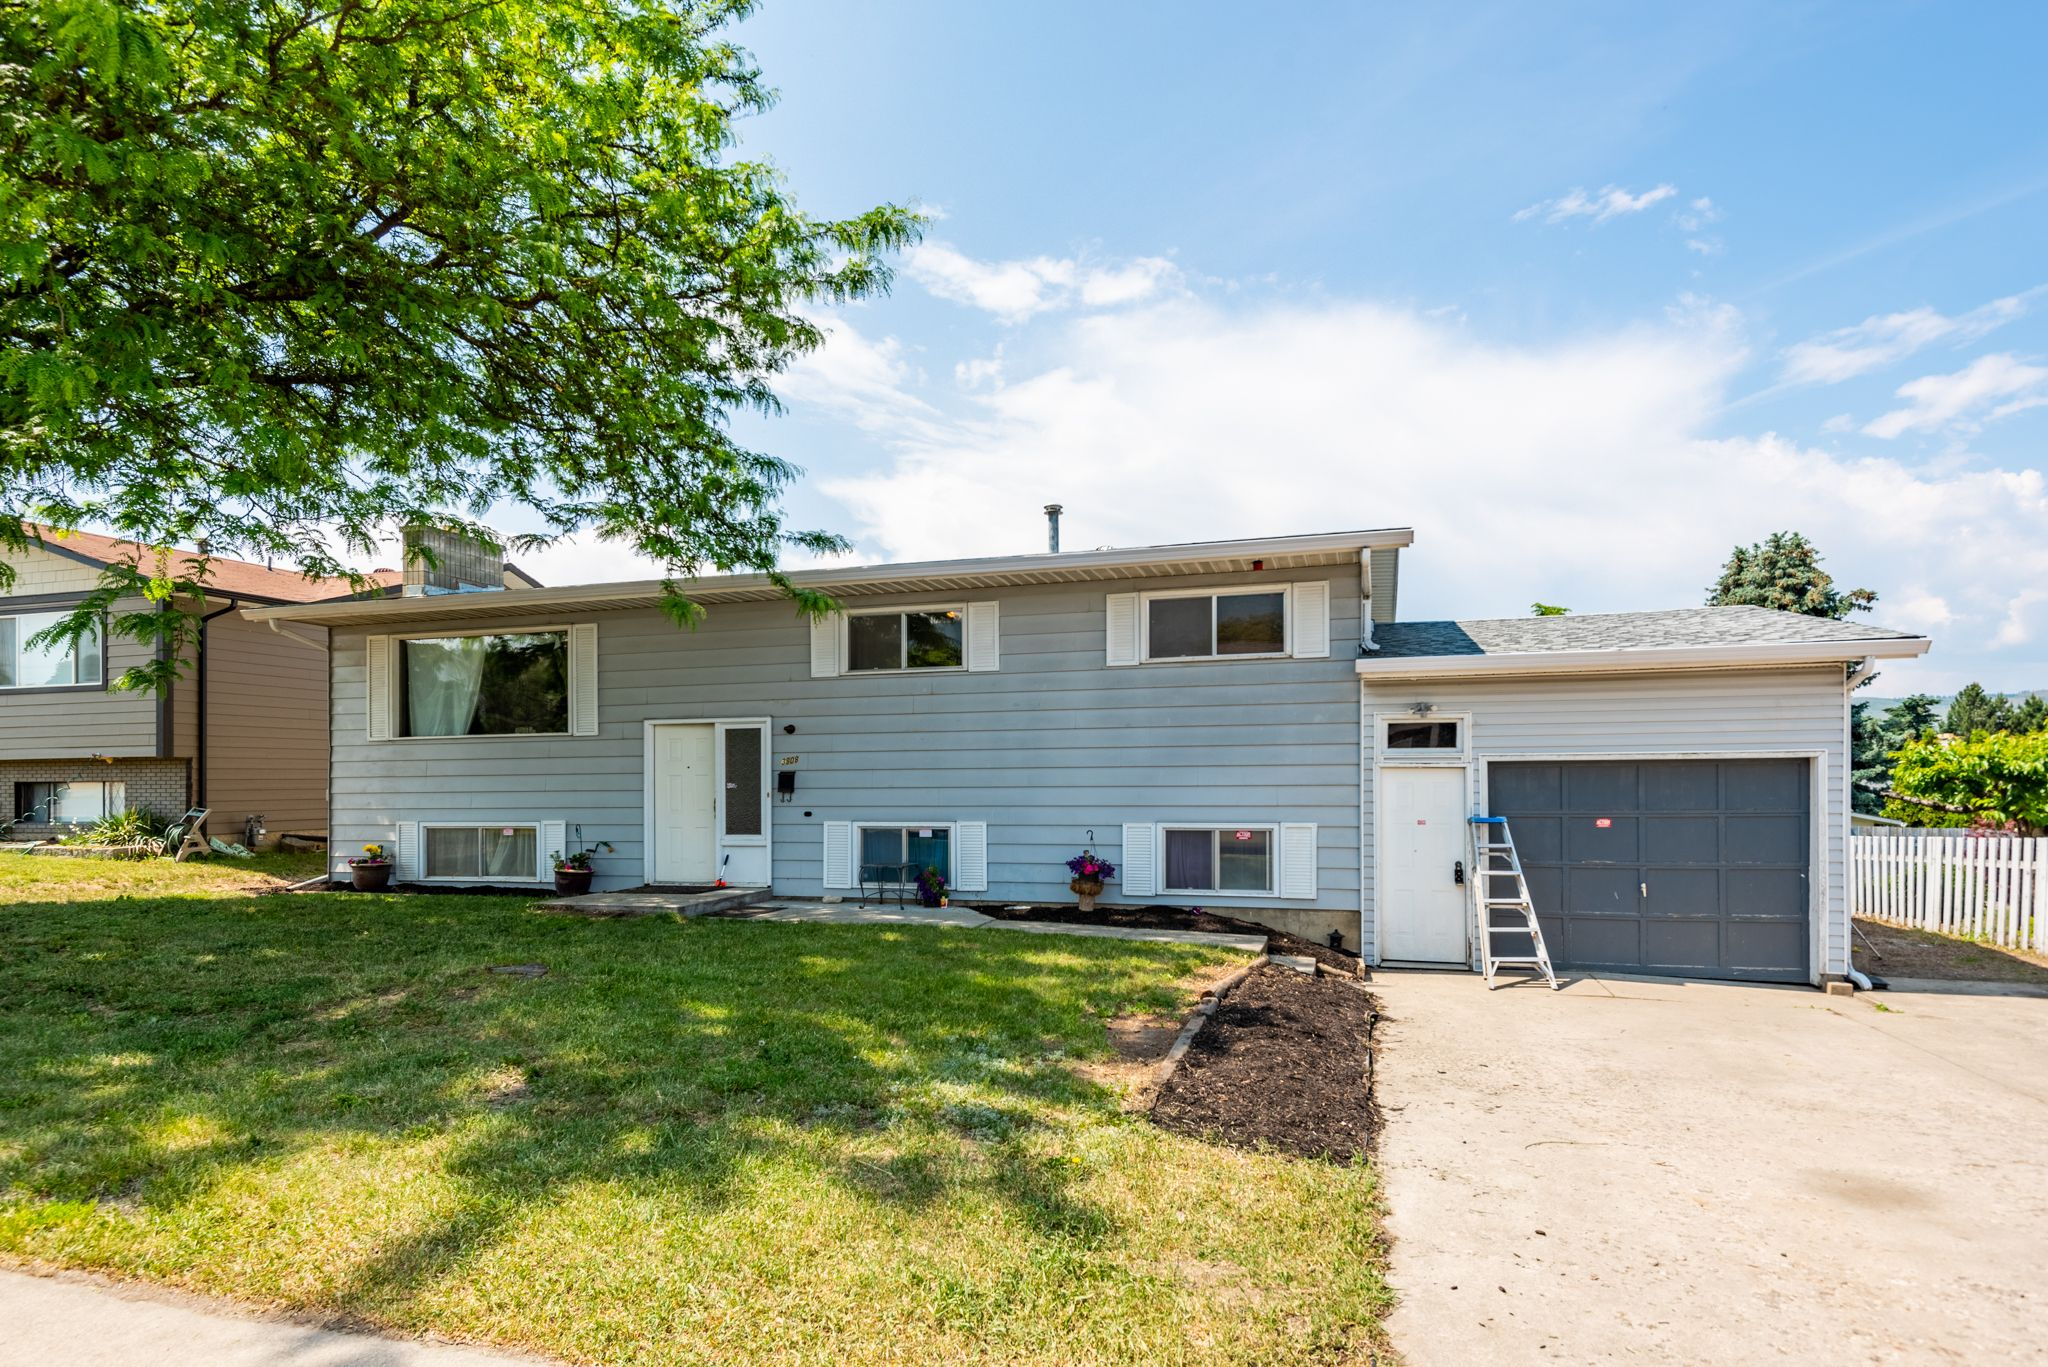 Main Photo: 3908 13th Street in Vernon: East Hill House for sale (North Okanagan)  : MLS®# 10184883